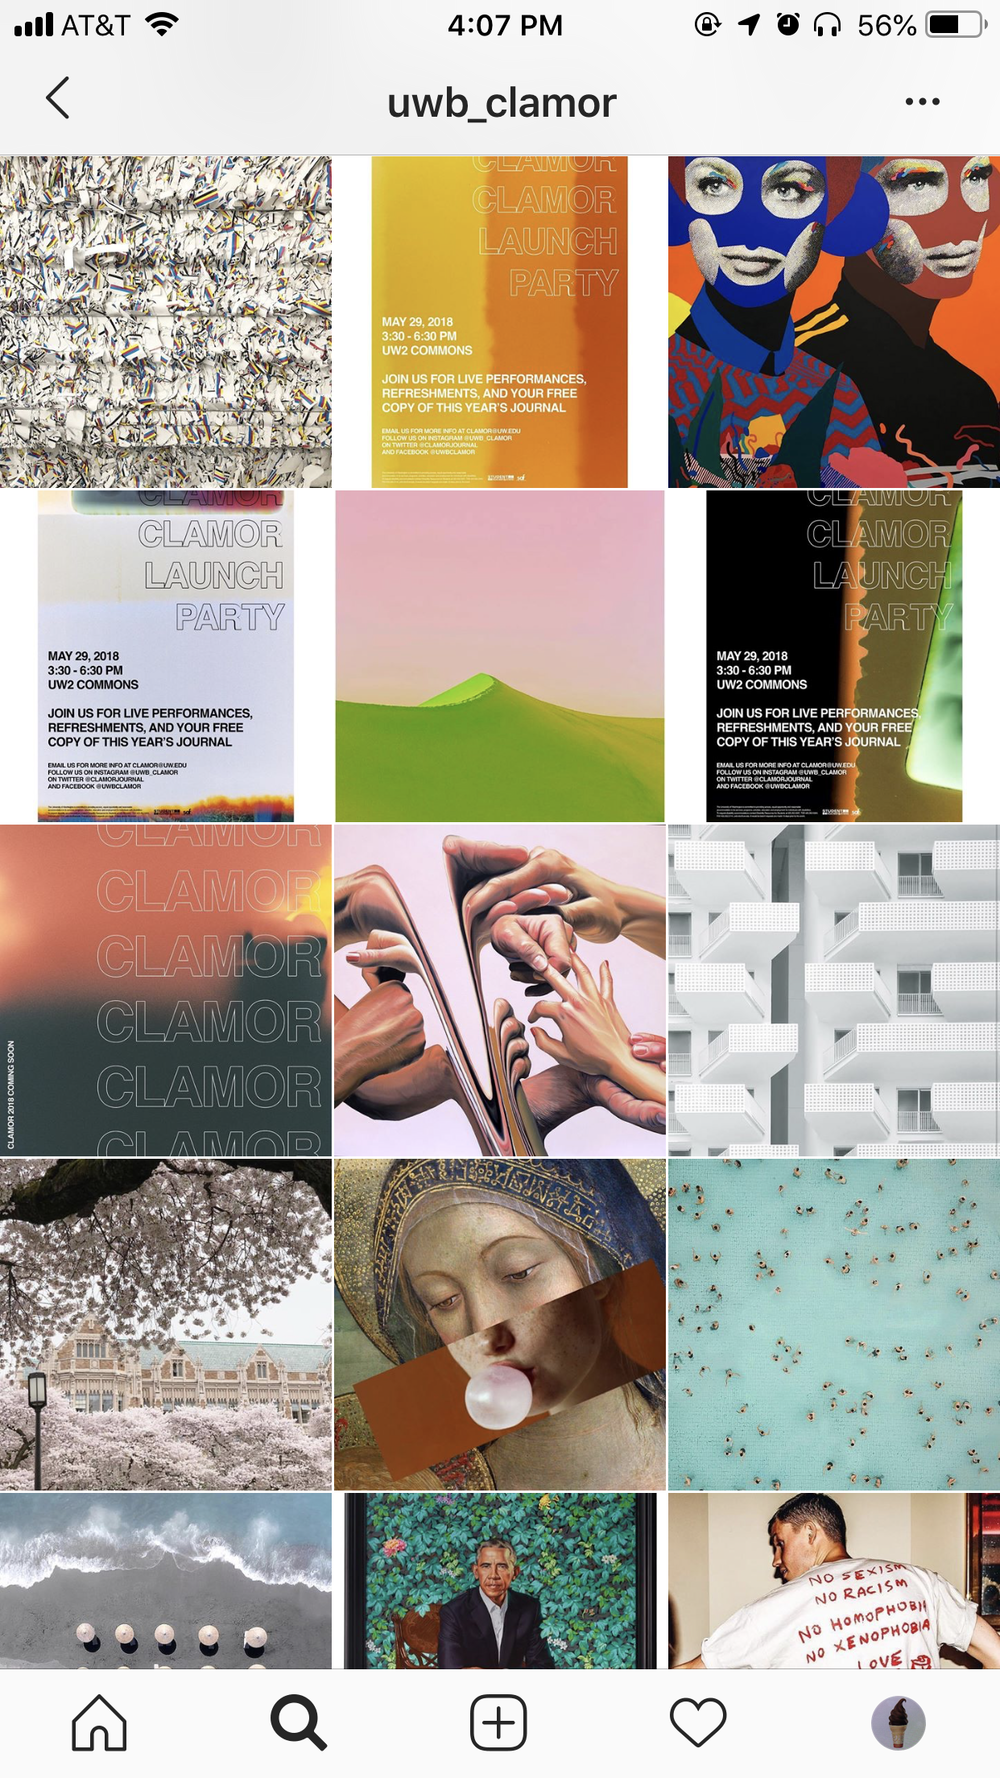 Clamor Instagram Feed